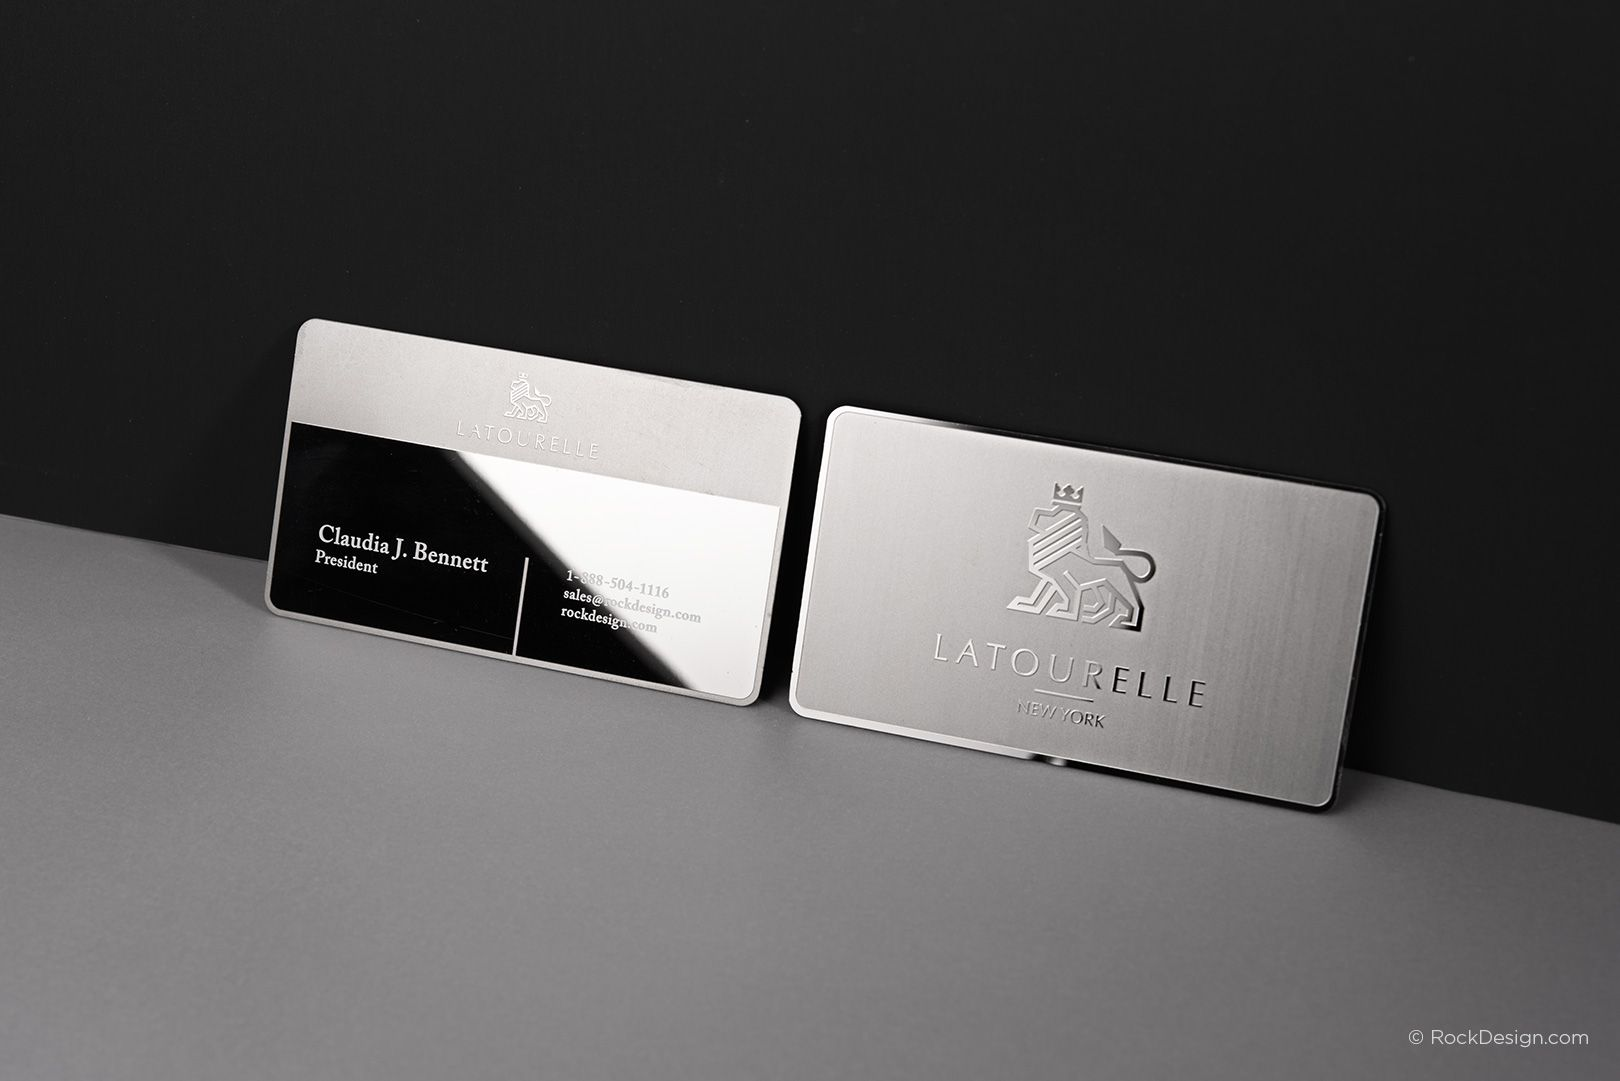 Sophisticated modern stainless steel business card with etching and sophisticated modern stainless steel business card with etching and mirror finish latourelle rockdesign luxury business card printing colourmoves